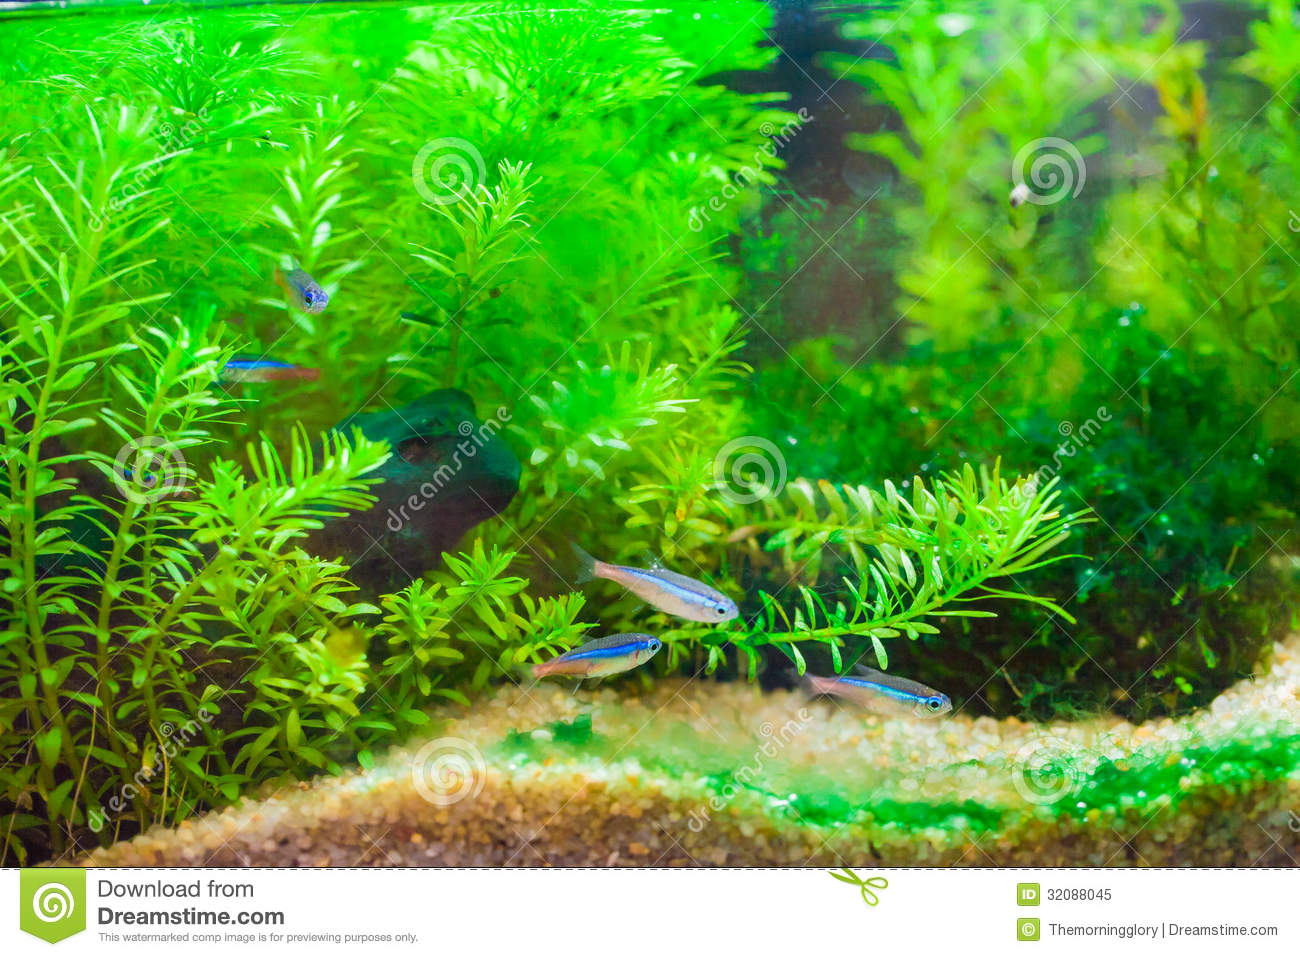 ... : Green beautiful planted tropical freshwater aquarium with fishes